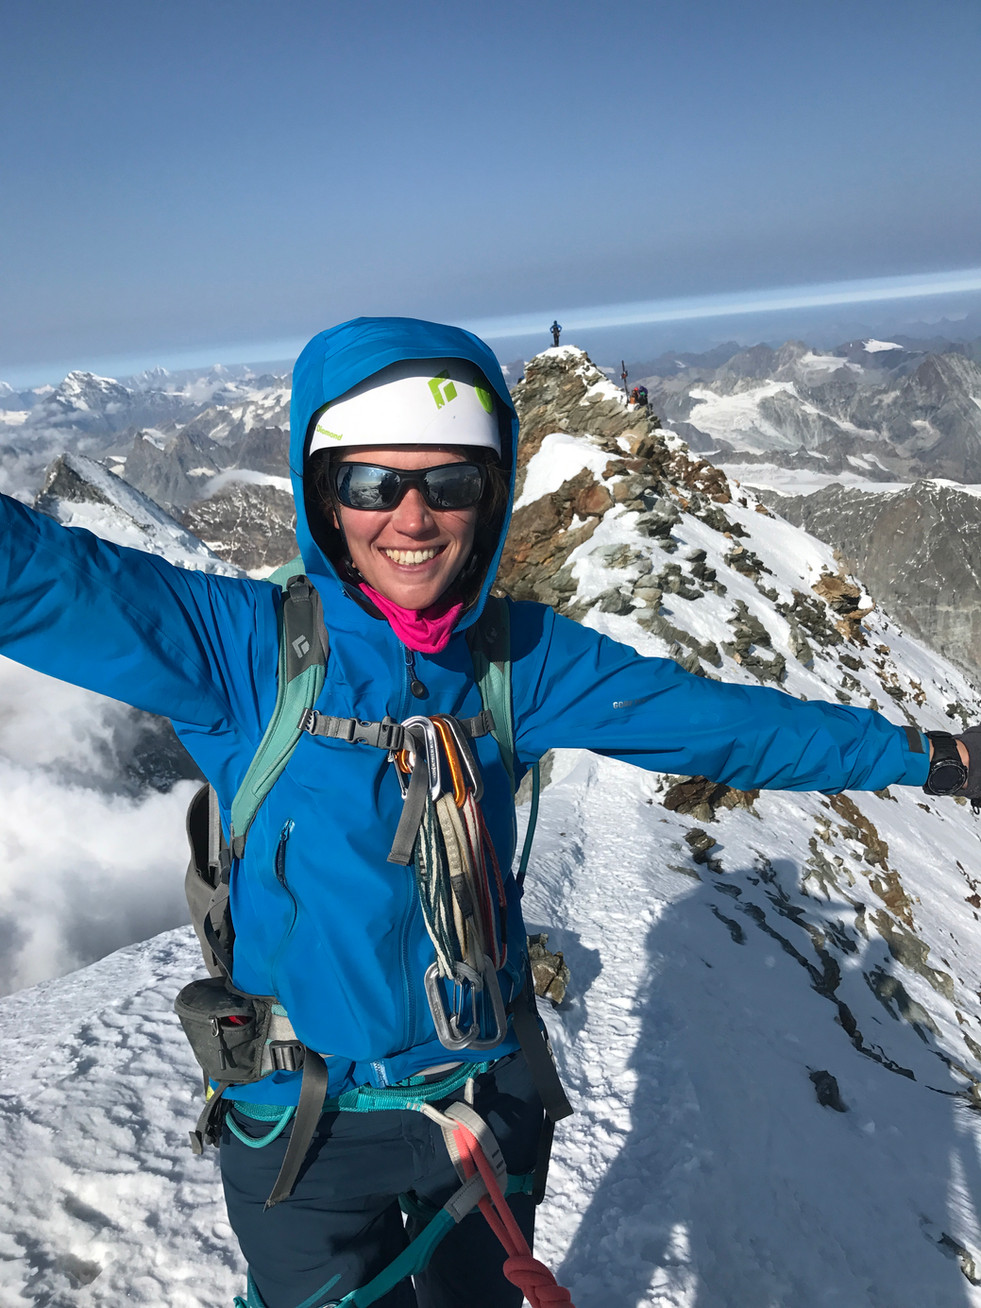 Climbing the Matterhorn, 150 years after the first female attempt